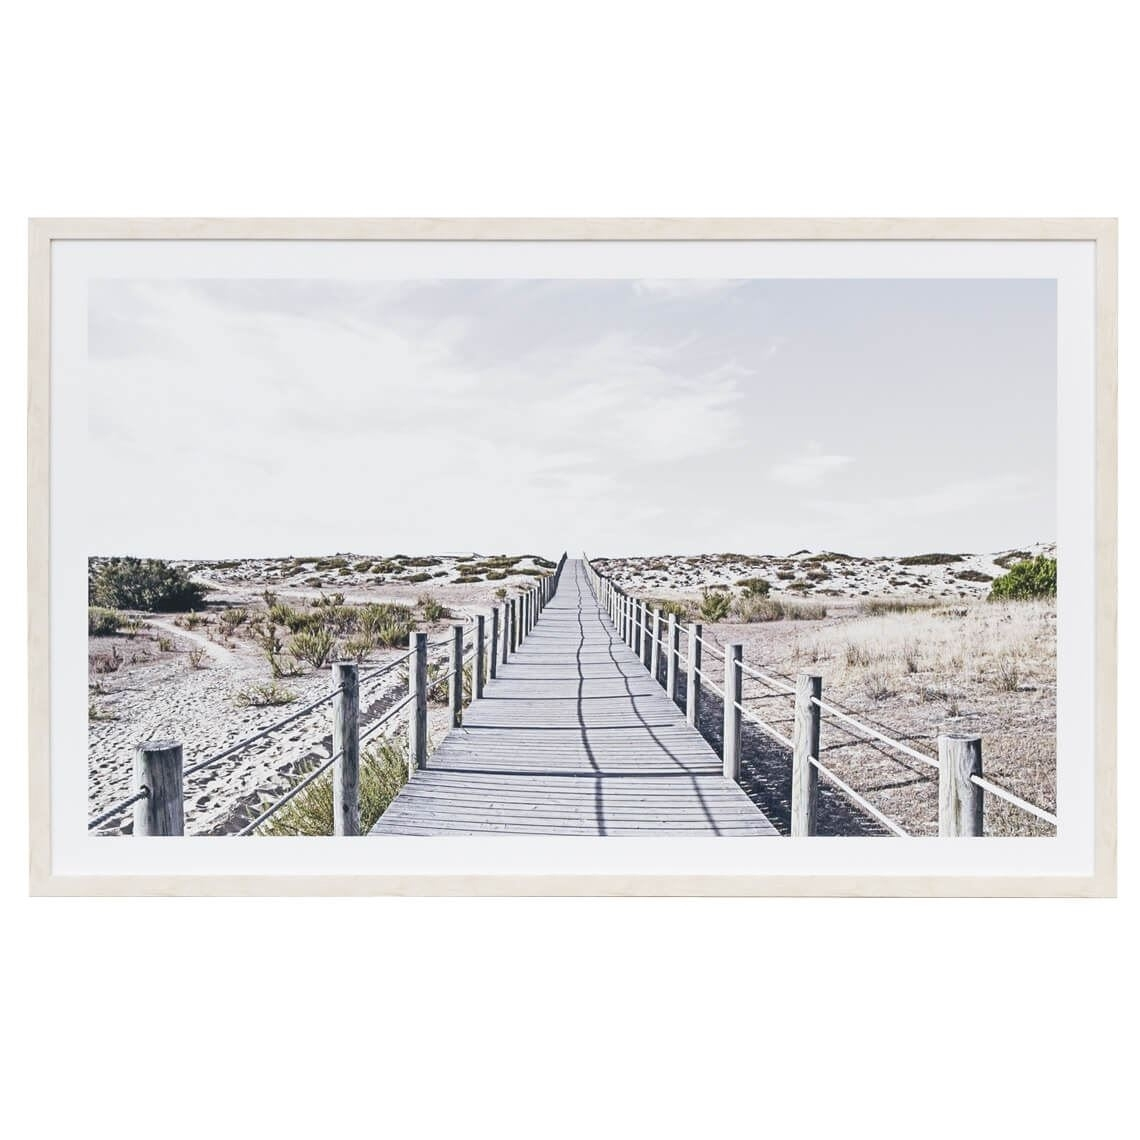 Wall Prints | Wall Art & Framed Prints | Freedom For Most Up To Date Mandurah Canvas Wall Art (View 10 of 15)